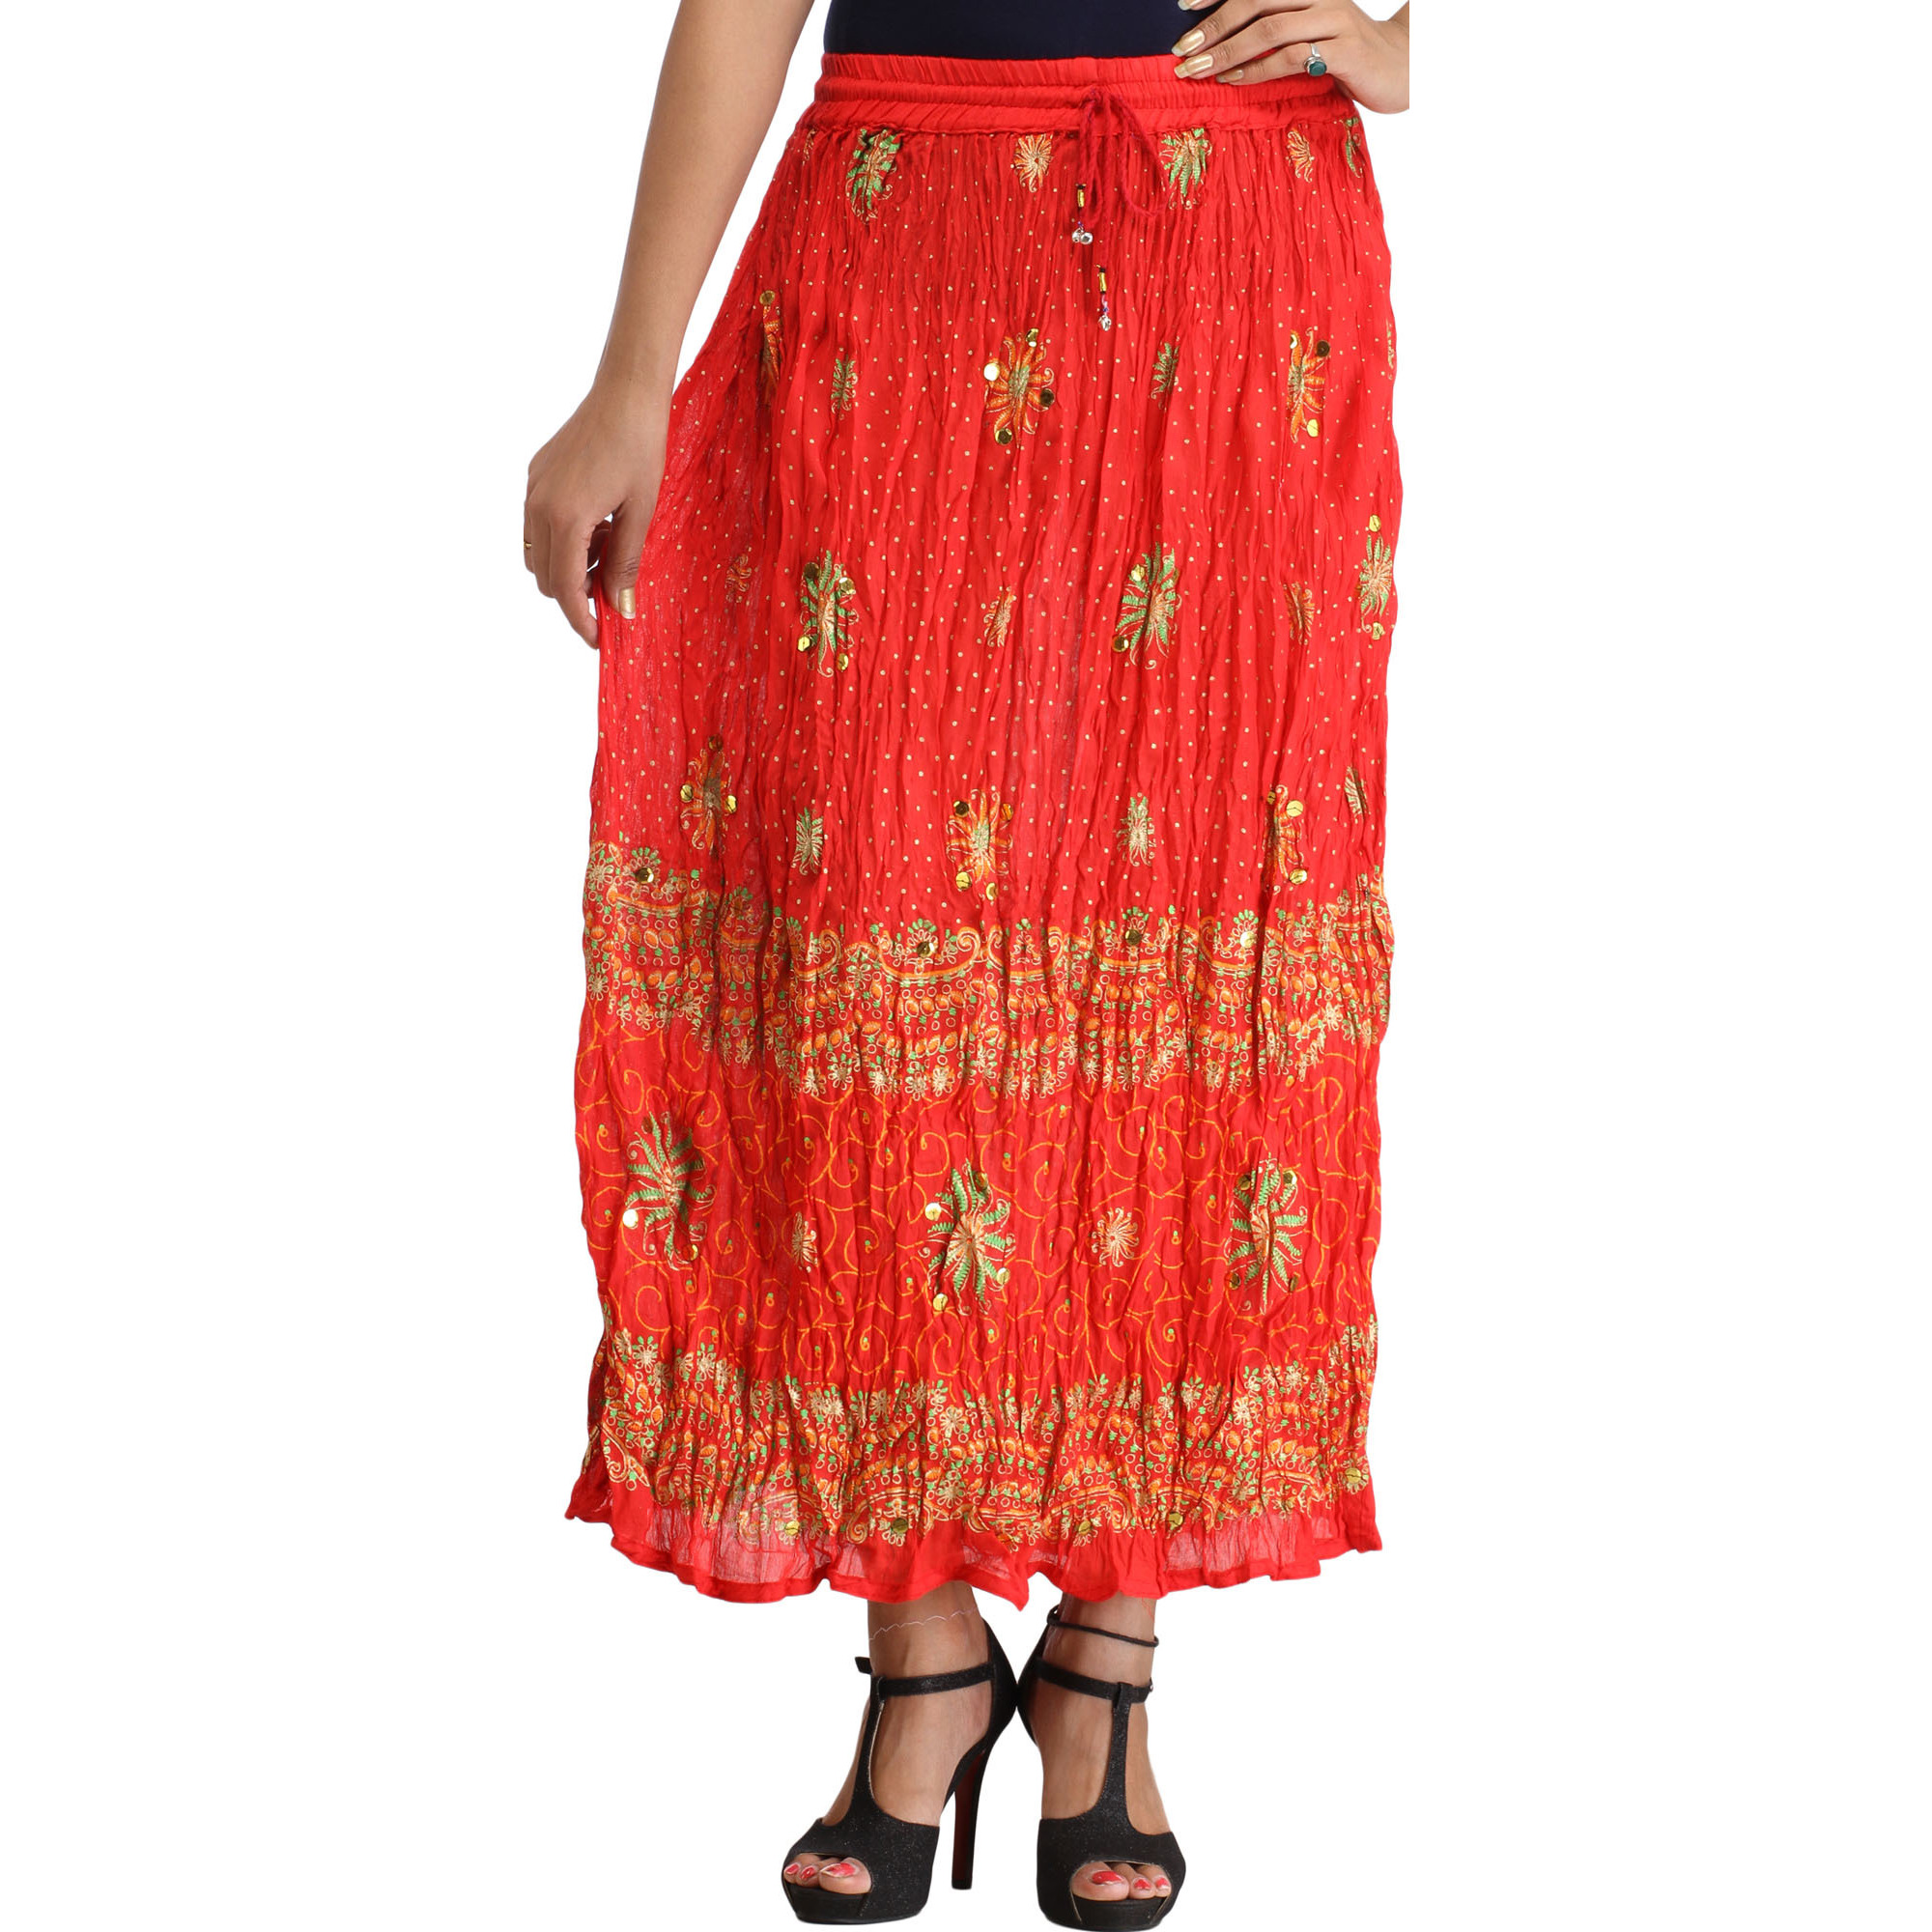 Lollipop-Red Crinkled Long Skirt with Printed Flowers and Sequins